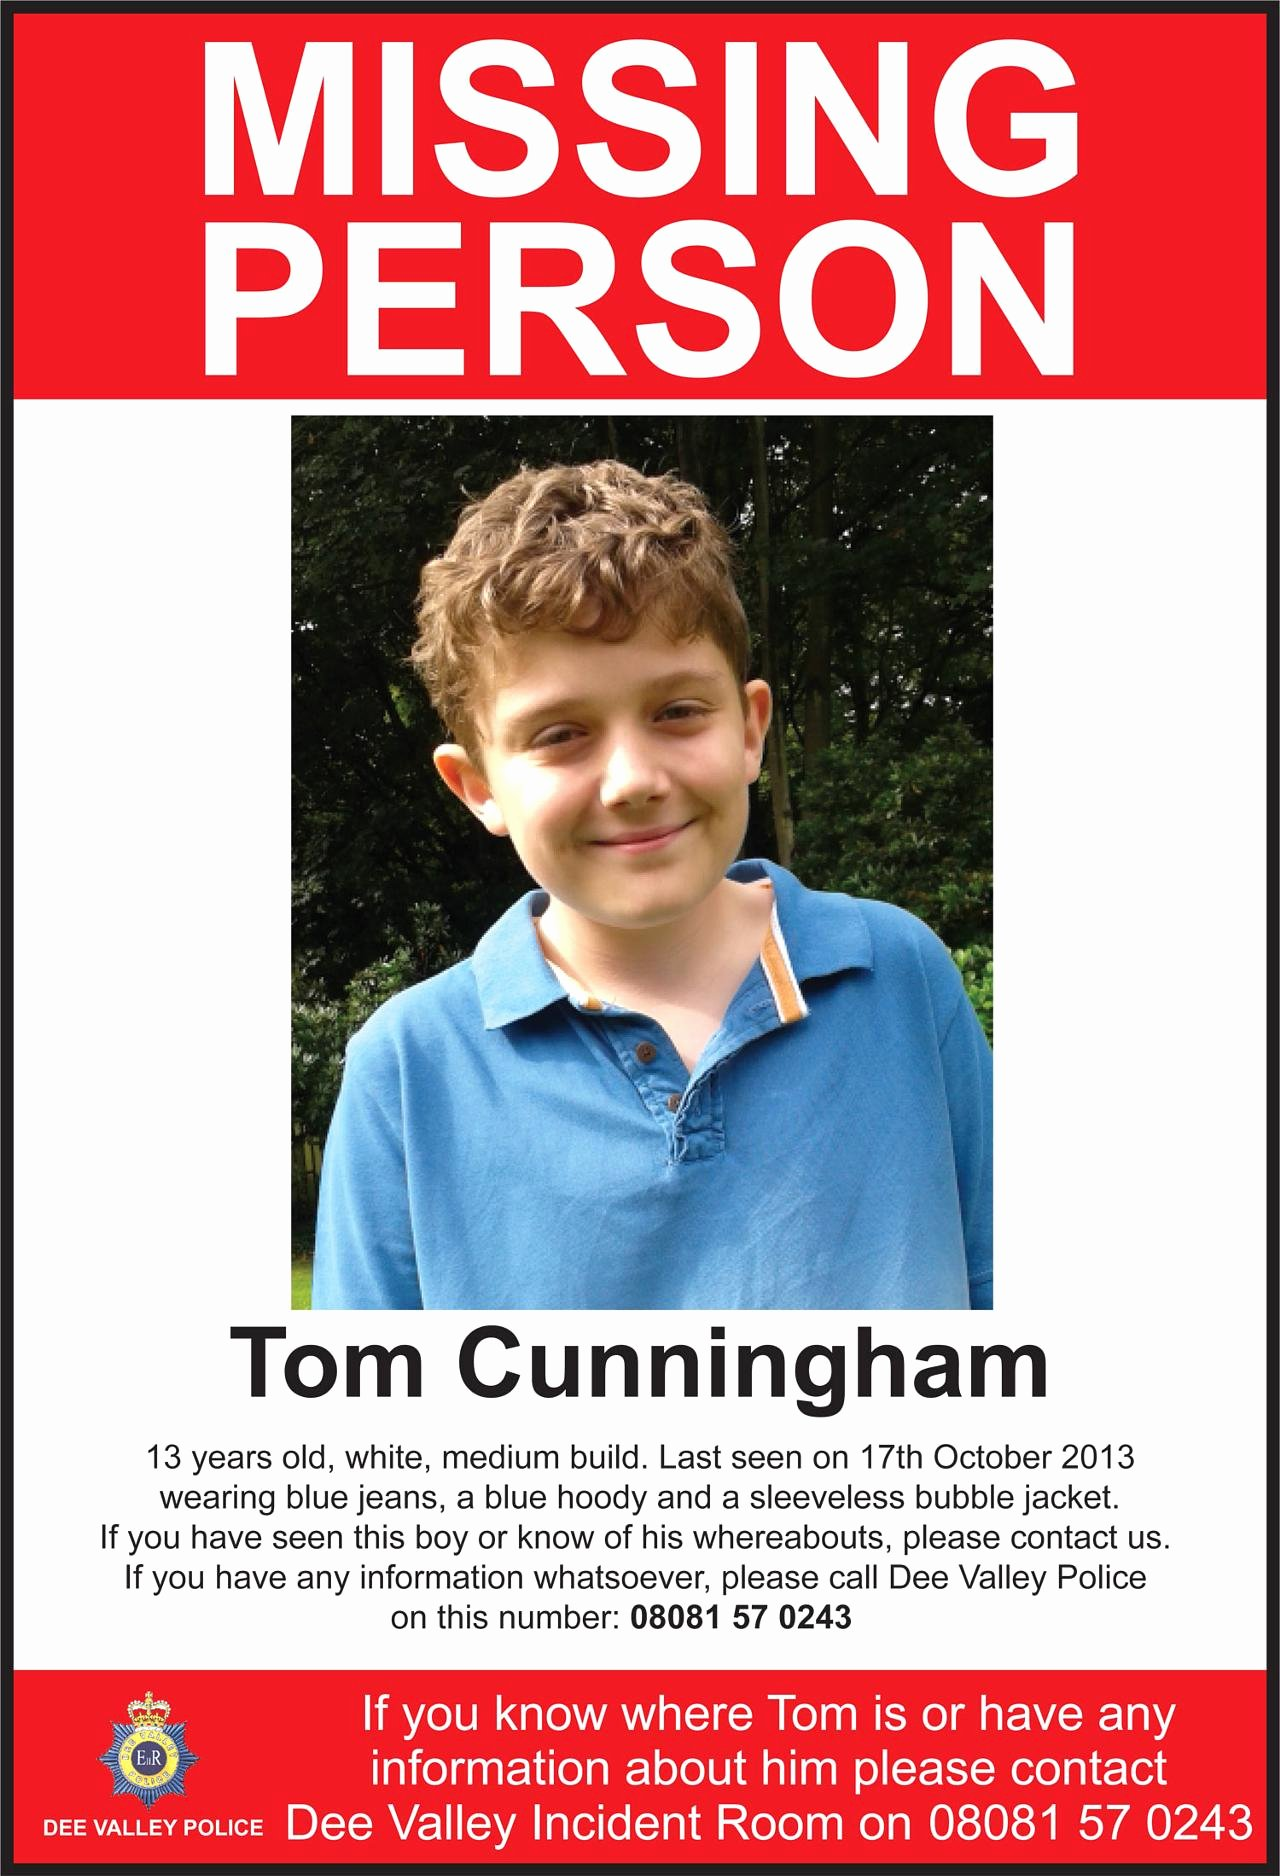 Missing Person Poster Template Lovely 10 Missing Person Poster Templates Excel Pdf formats